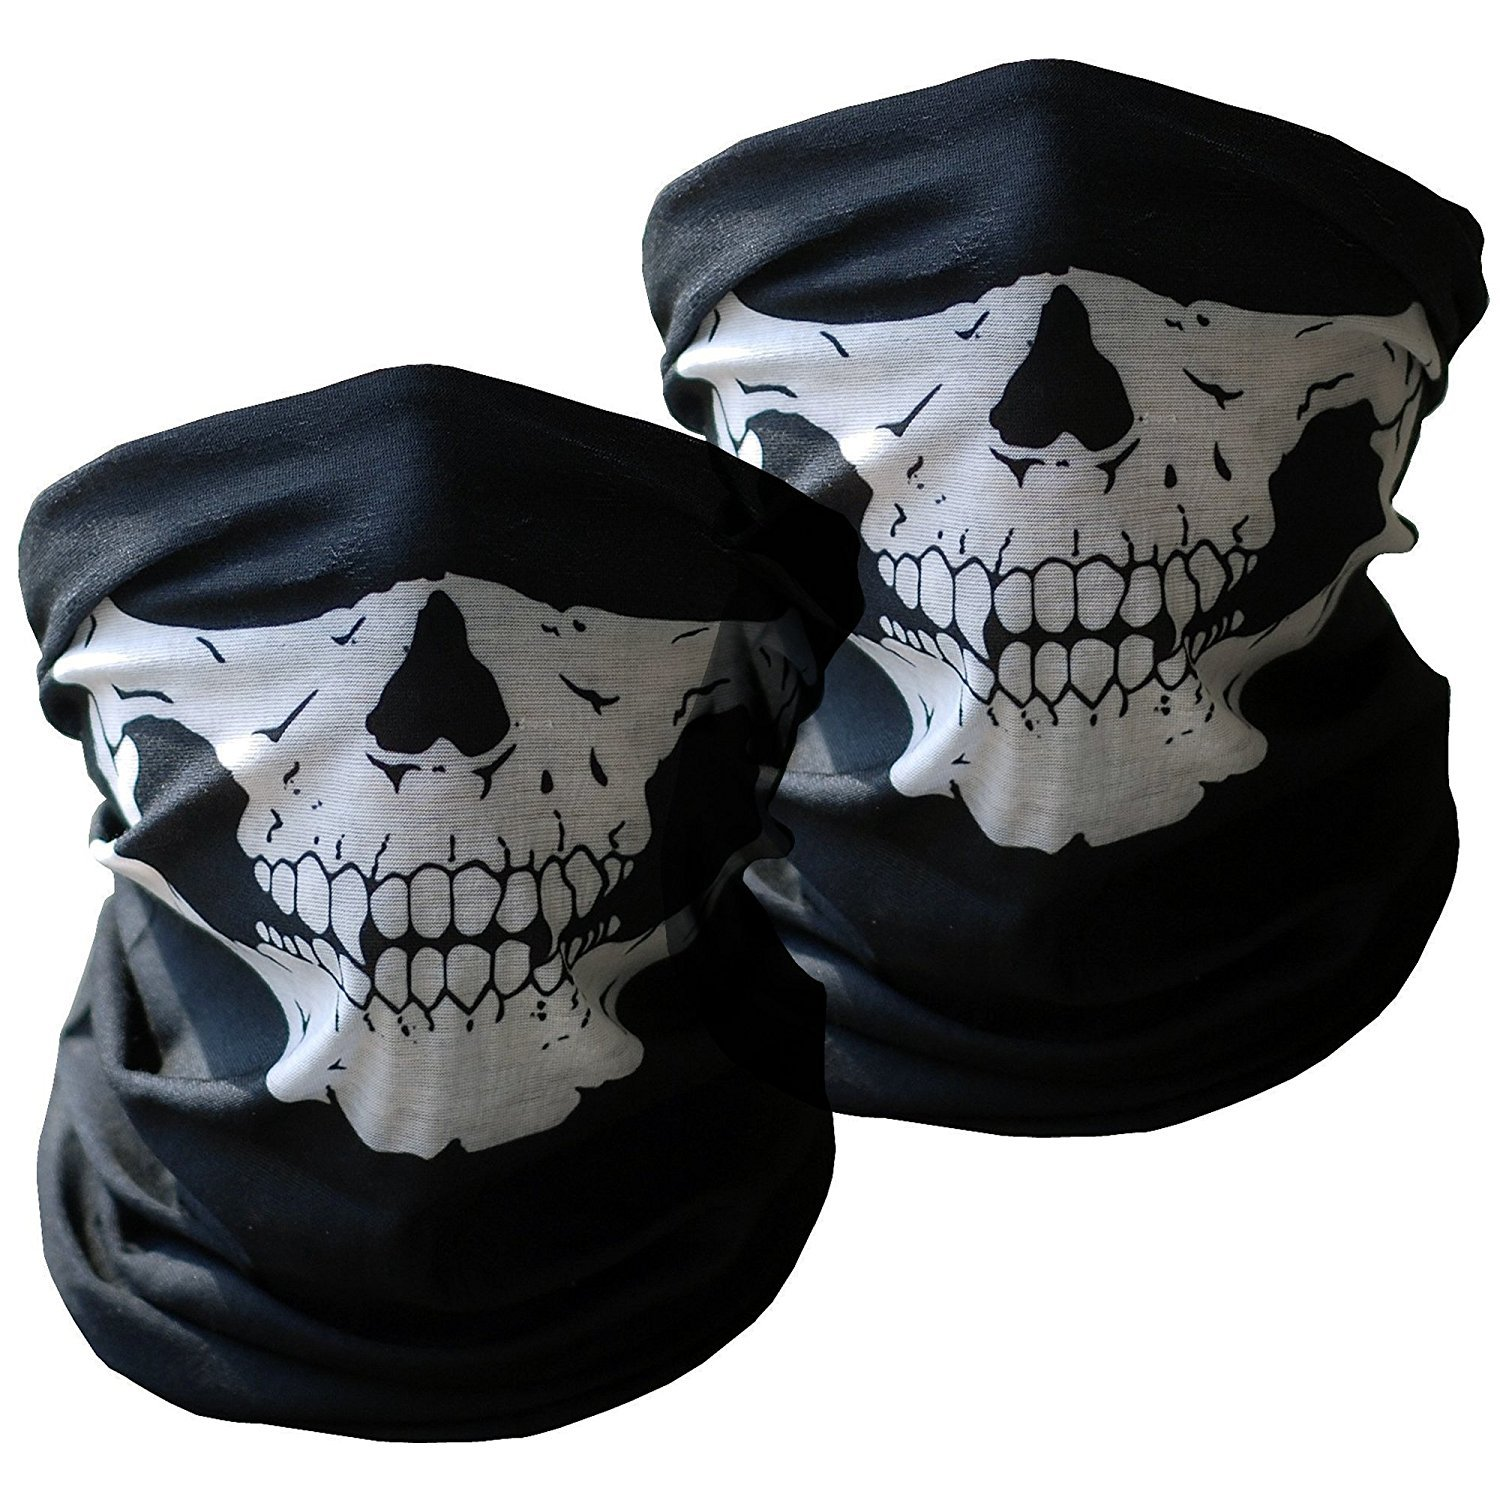 Motorcycle Face Masks 3 Pieces Xpassion Skull Mask Half Face for Out Riding Motorcycle Black